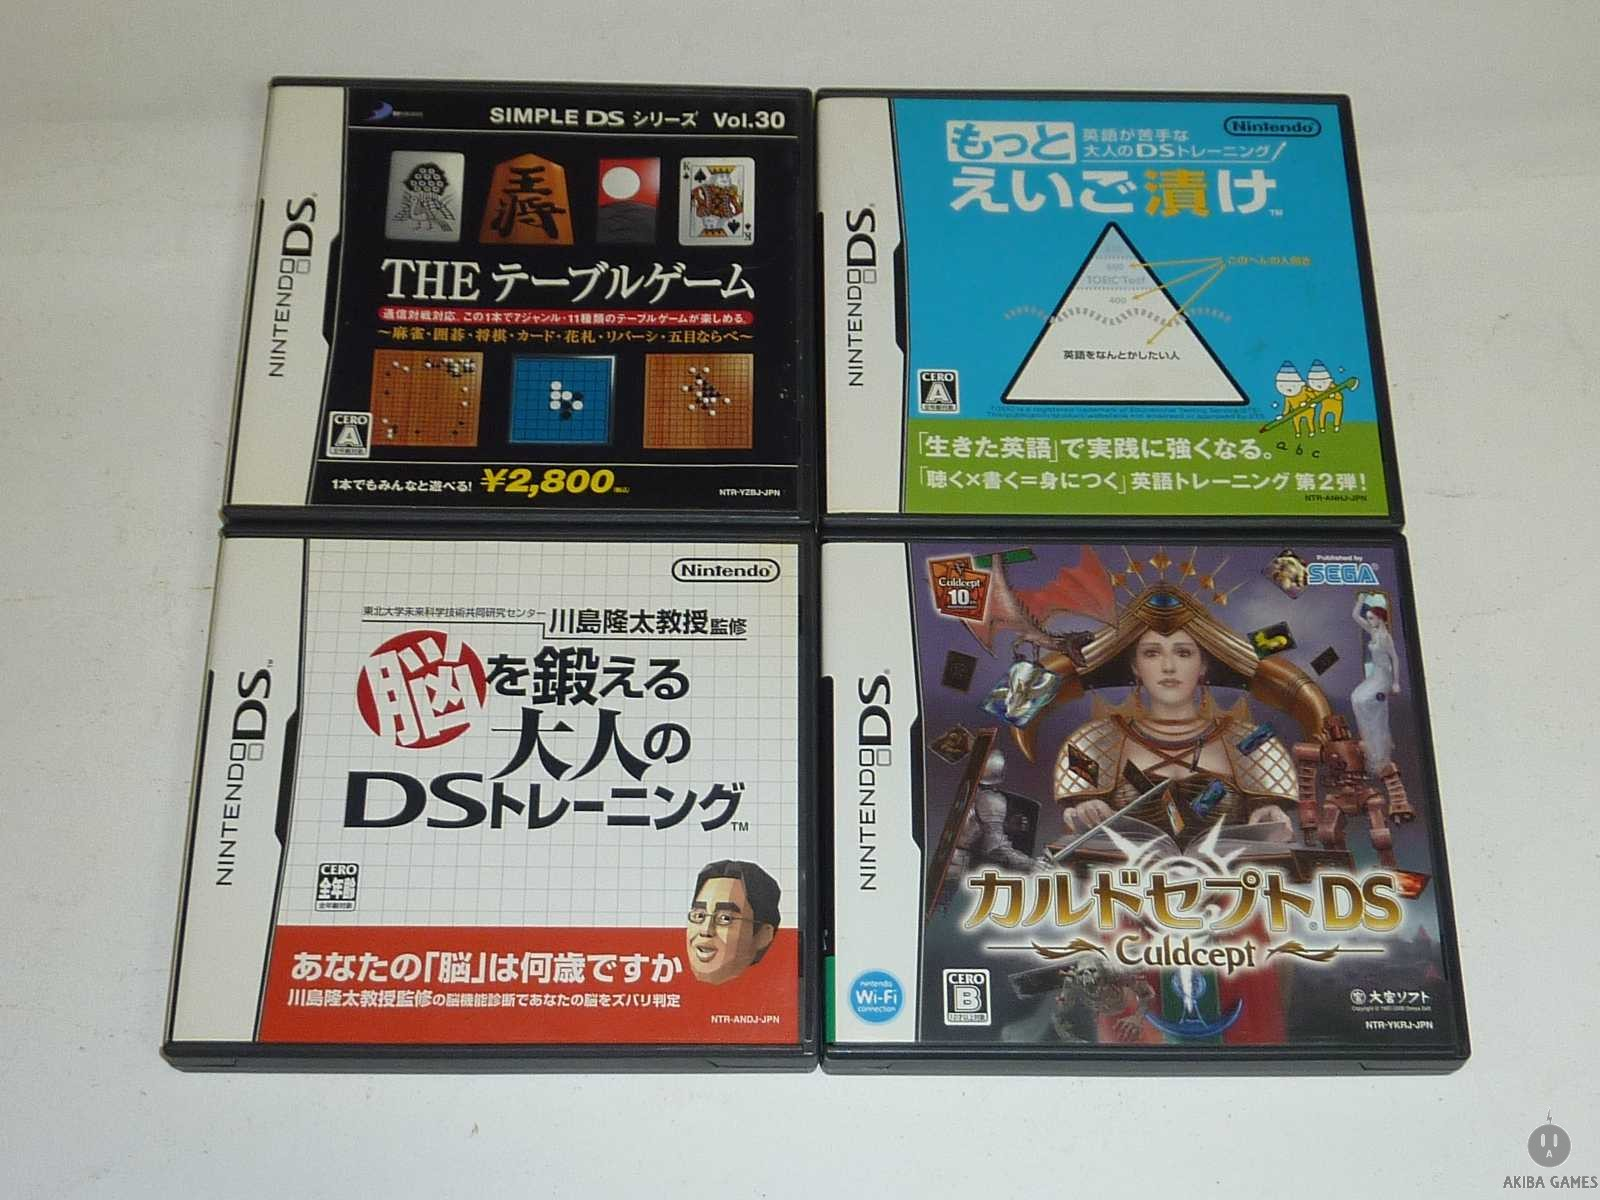 [DS] Nou wo Kitaeru Otona No DS Traning - Brain Training...etc 4 Games Set